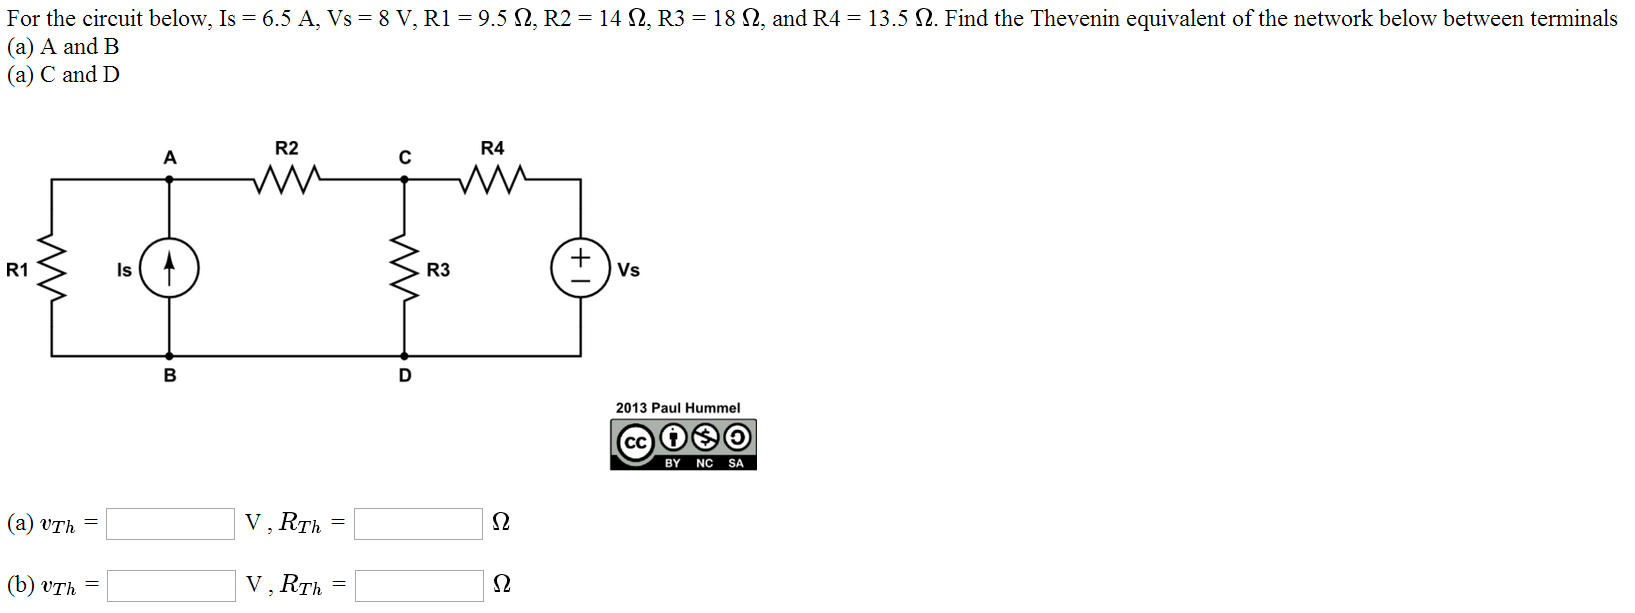 For the circuit below. Is = 6.5 A, Vs = 8 V, R1 =